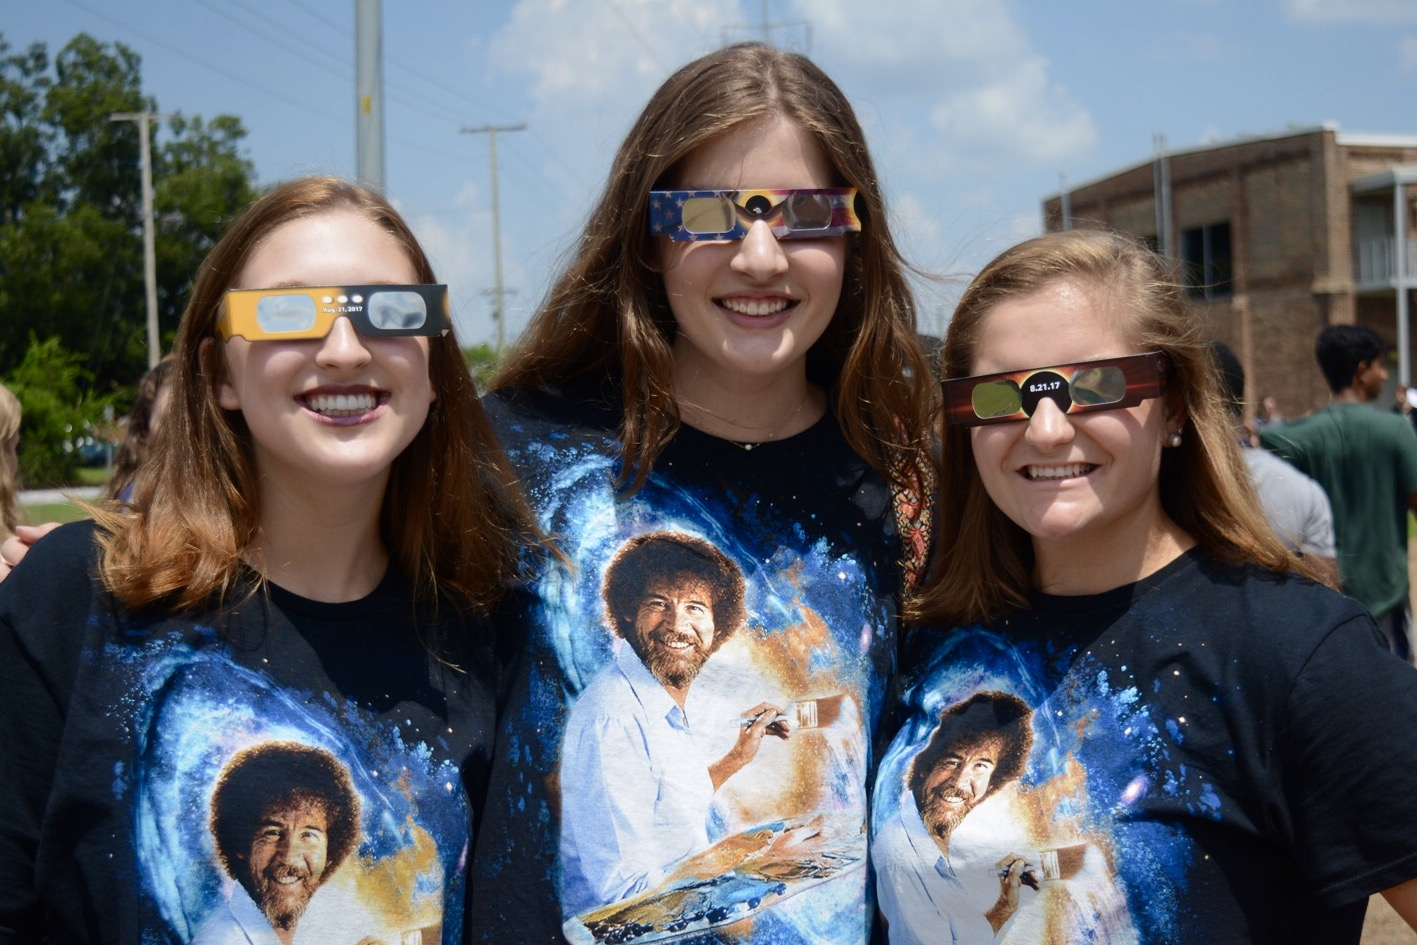 Seniors+Hayden+Stokley%2C+Mary+Owings%2C+and+Devon+Matheny+await+the+solar+eclipse+in+their+matching+shirts+and+eclipse+glasses.+